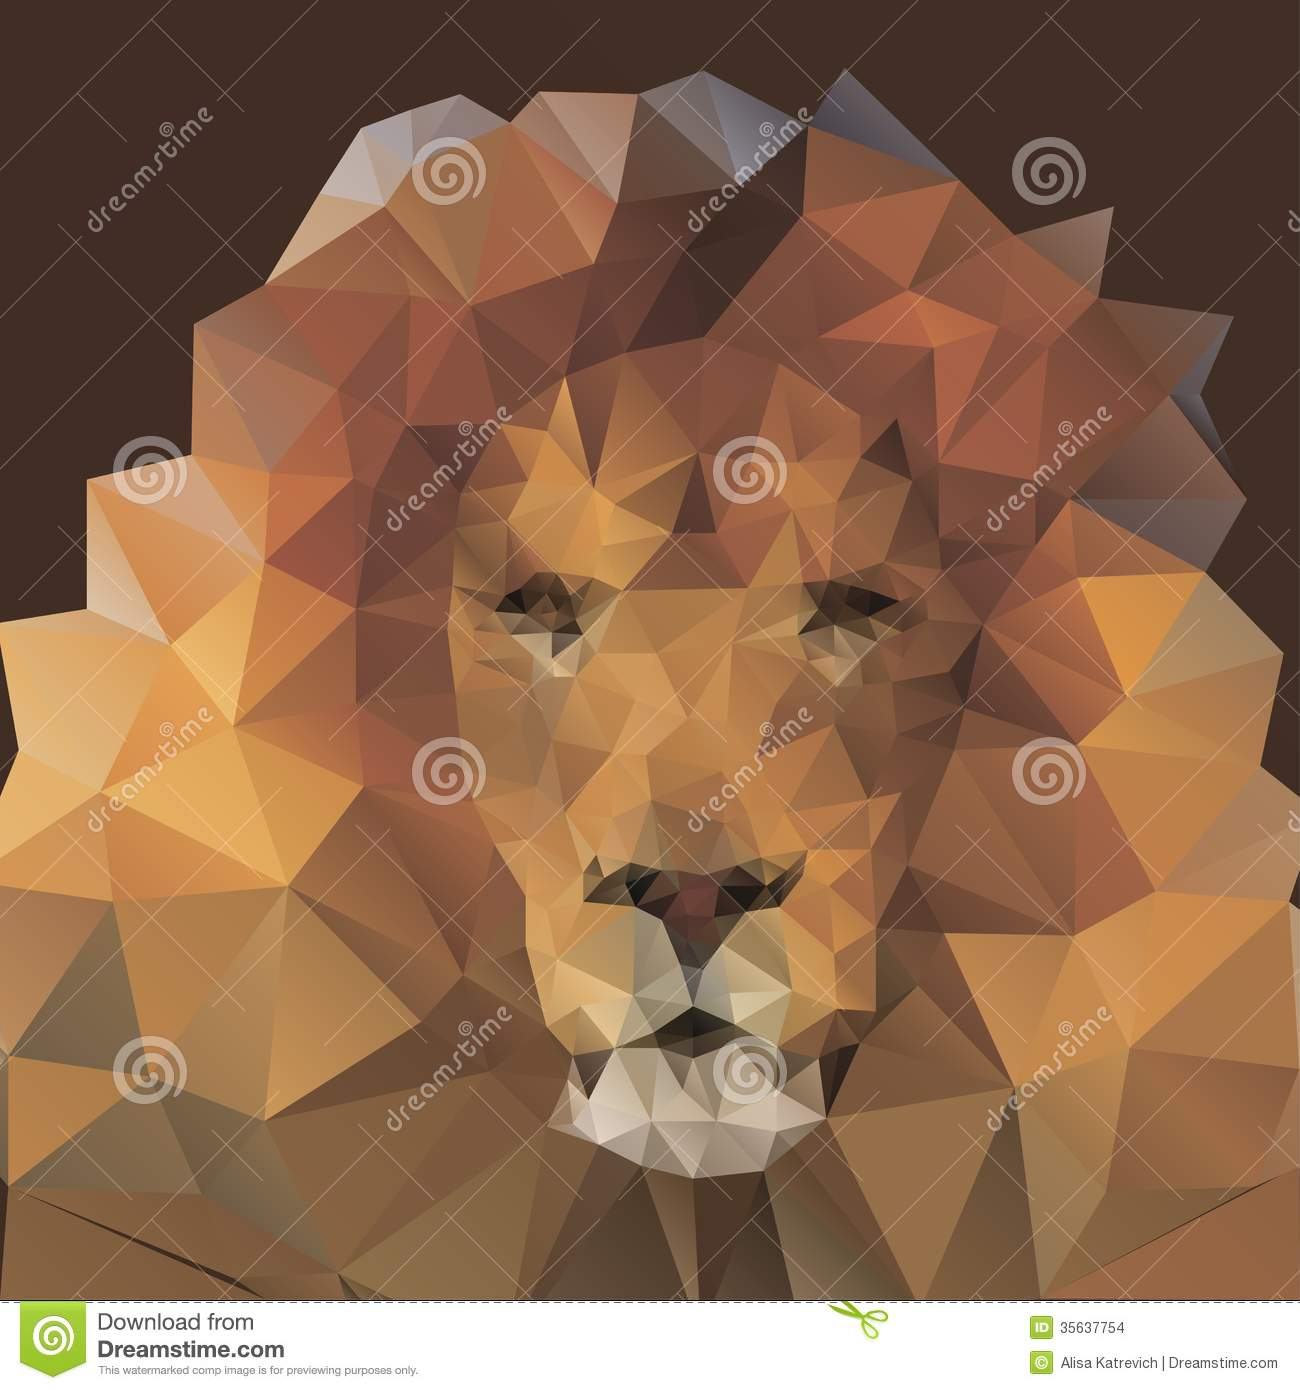 Lion In The Style Of Origami Stock Images